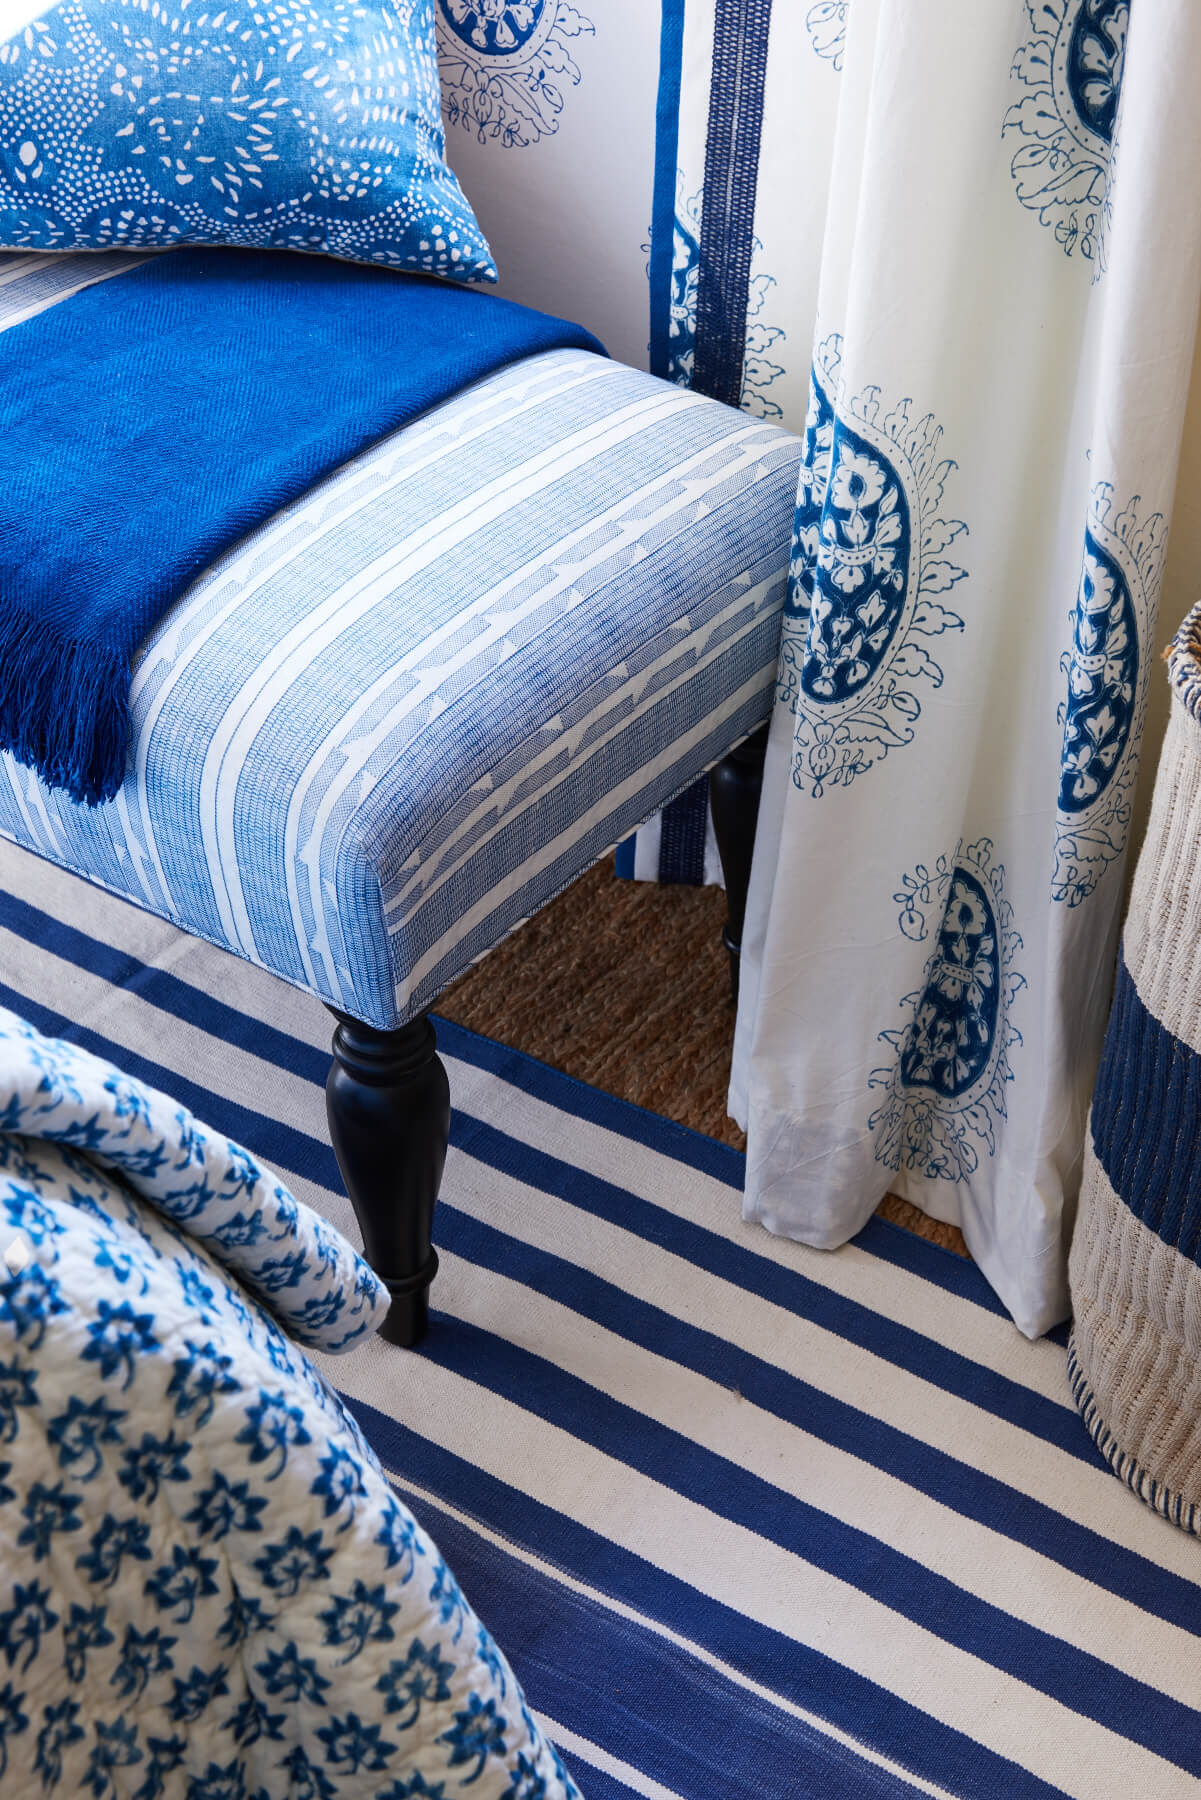 Blue and White spanish pattern drapery and chairs